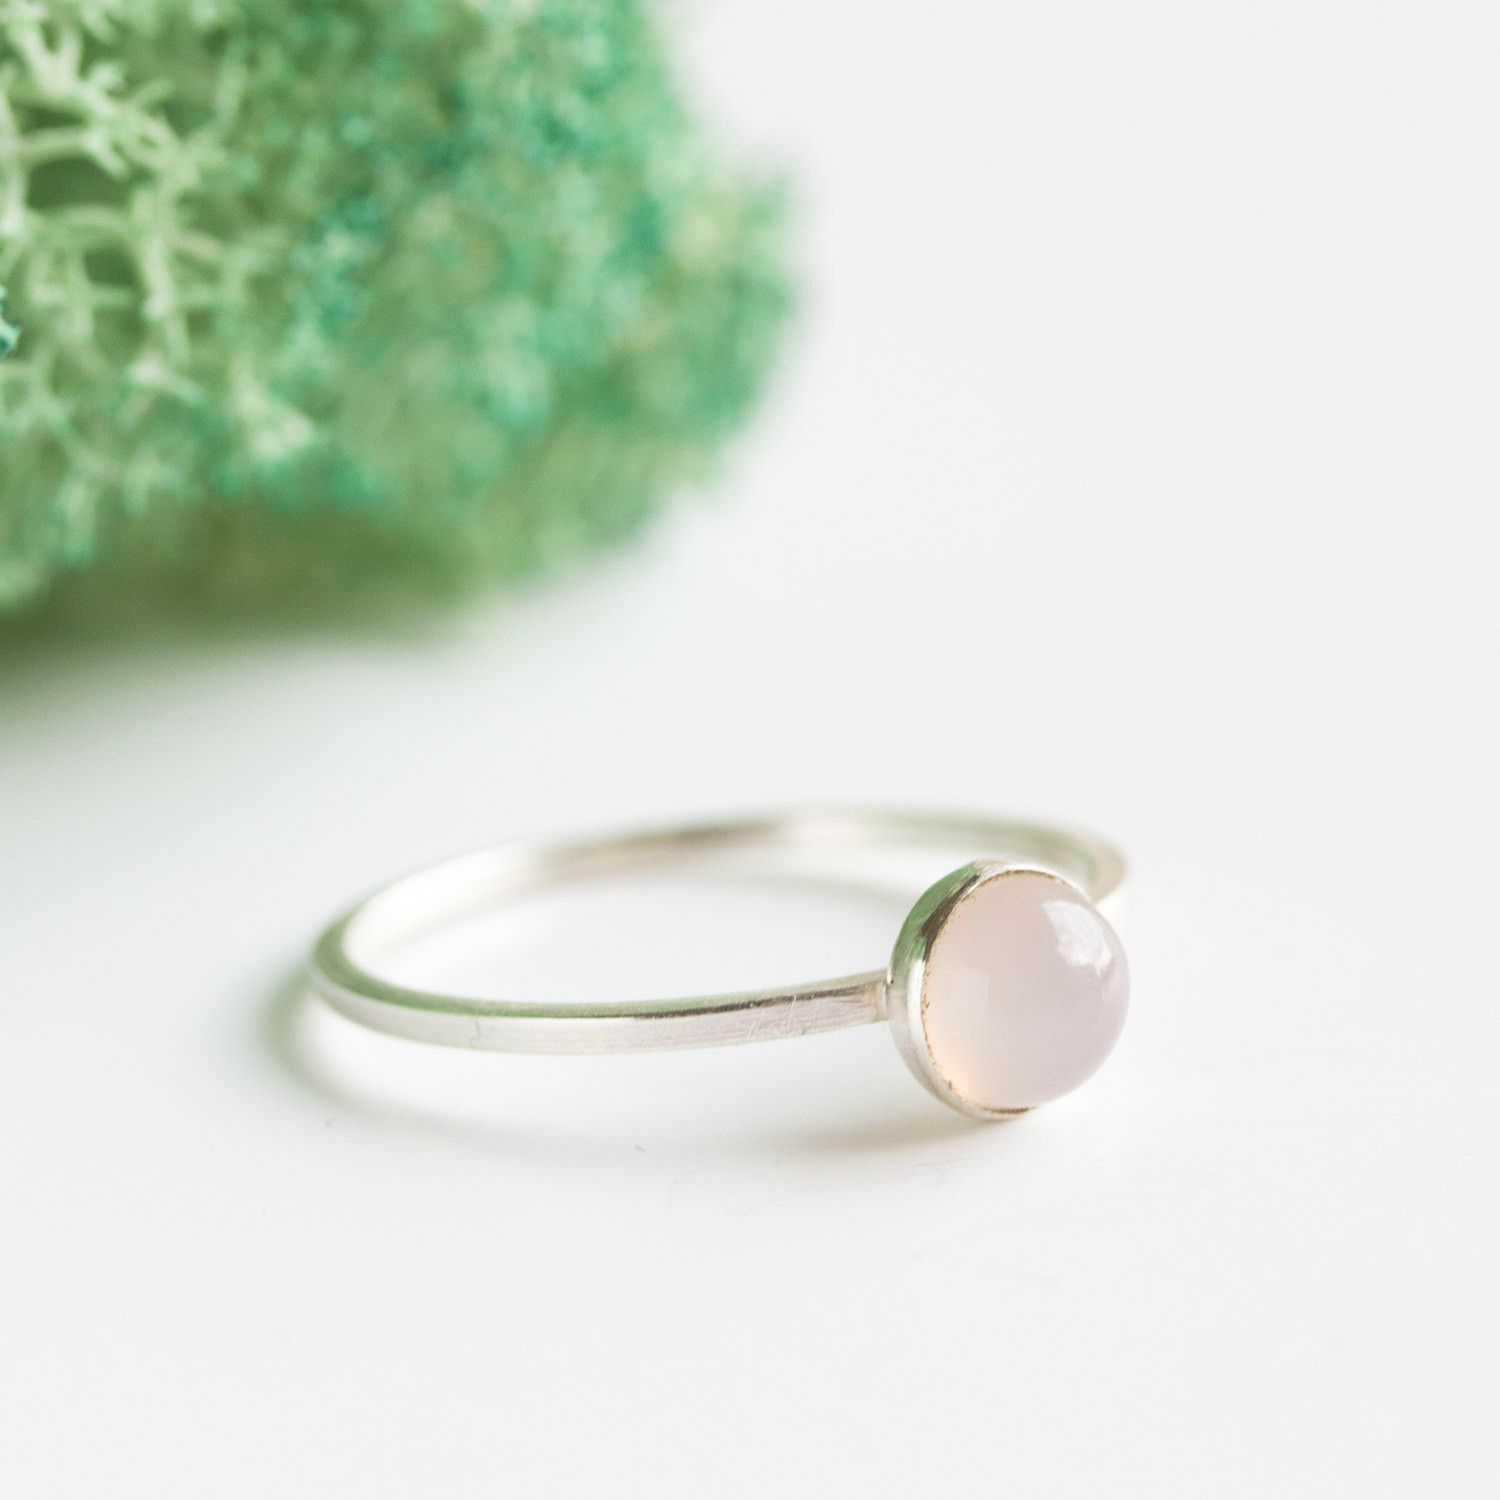 Simple silver ring with pink chalcedony gemstone   Style ...